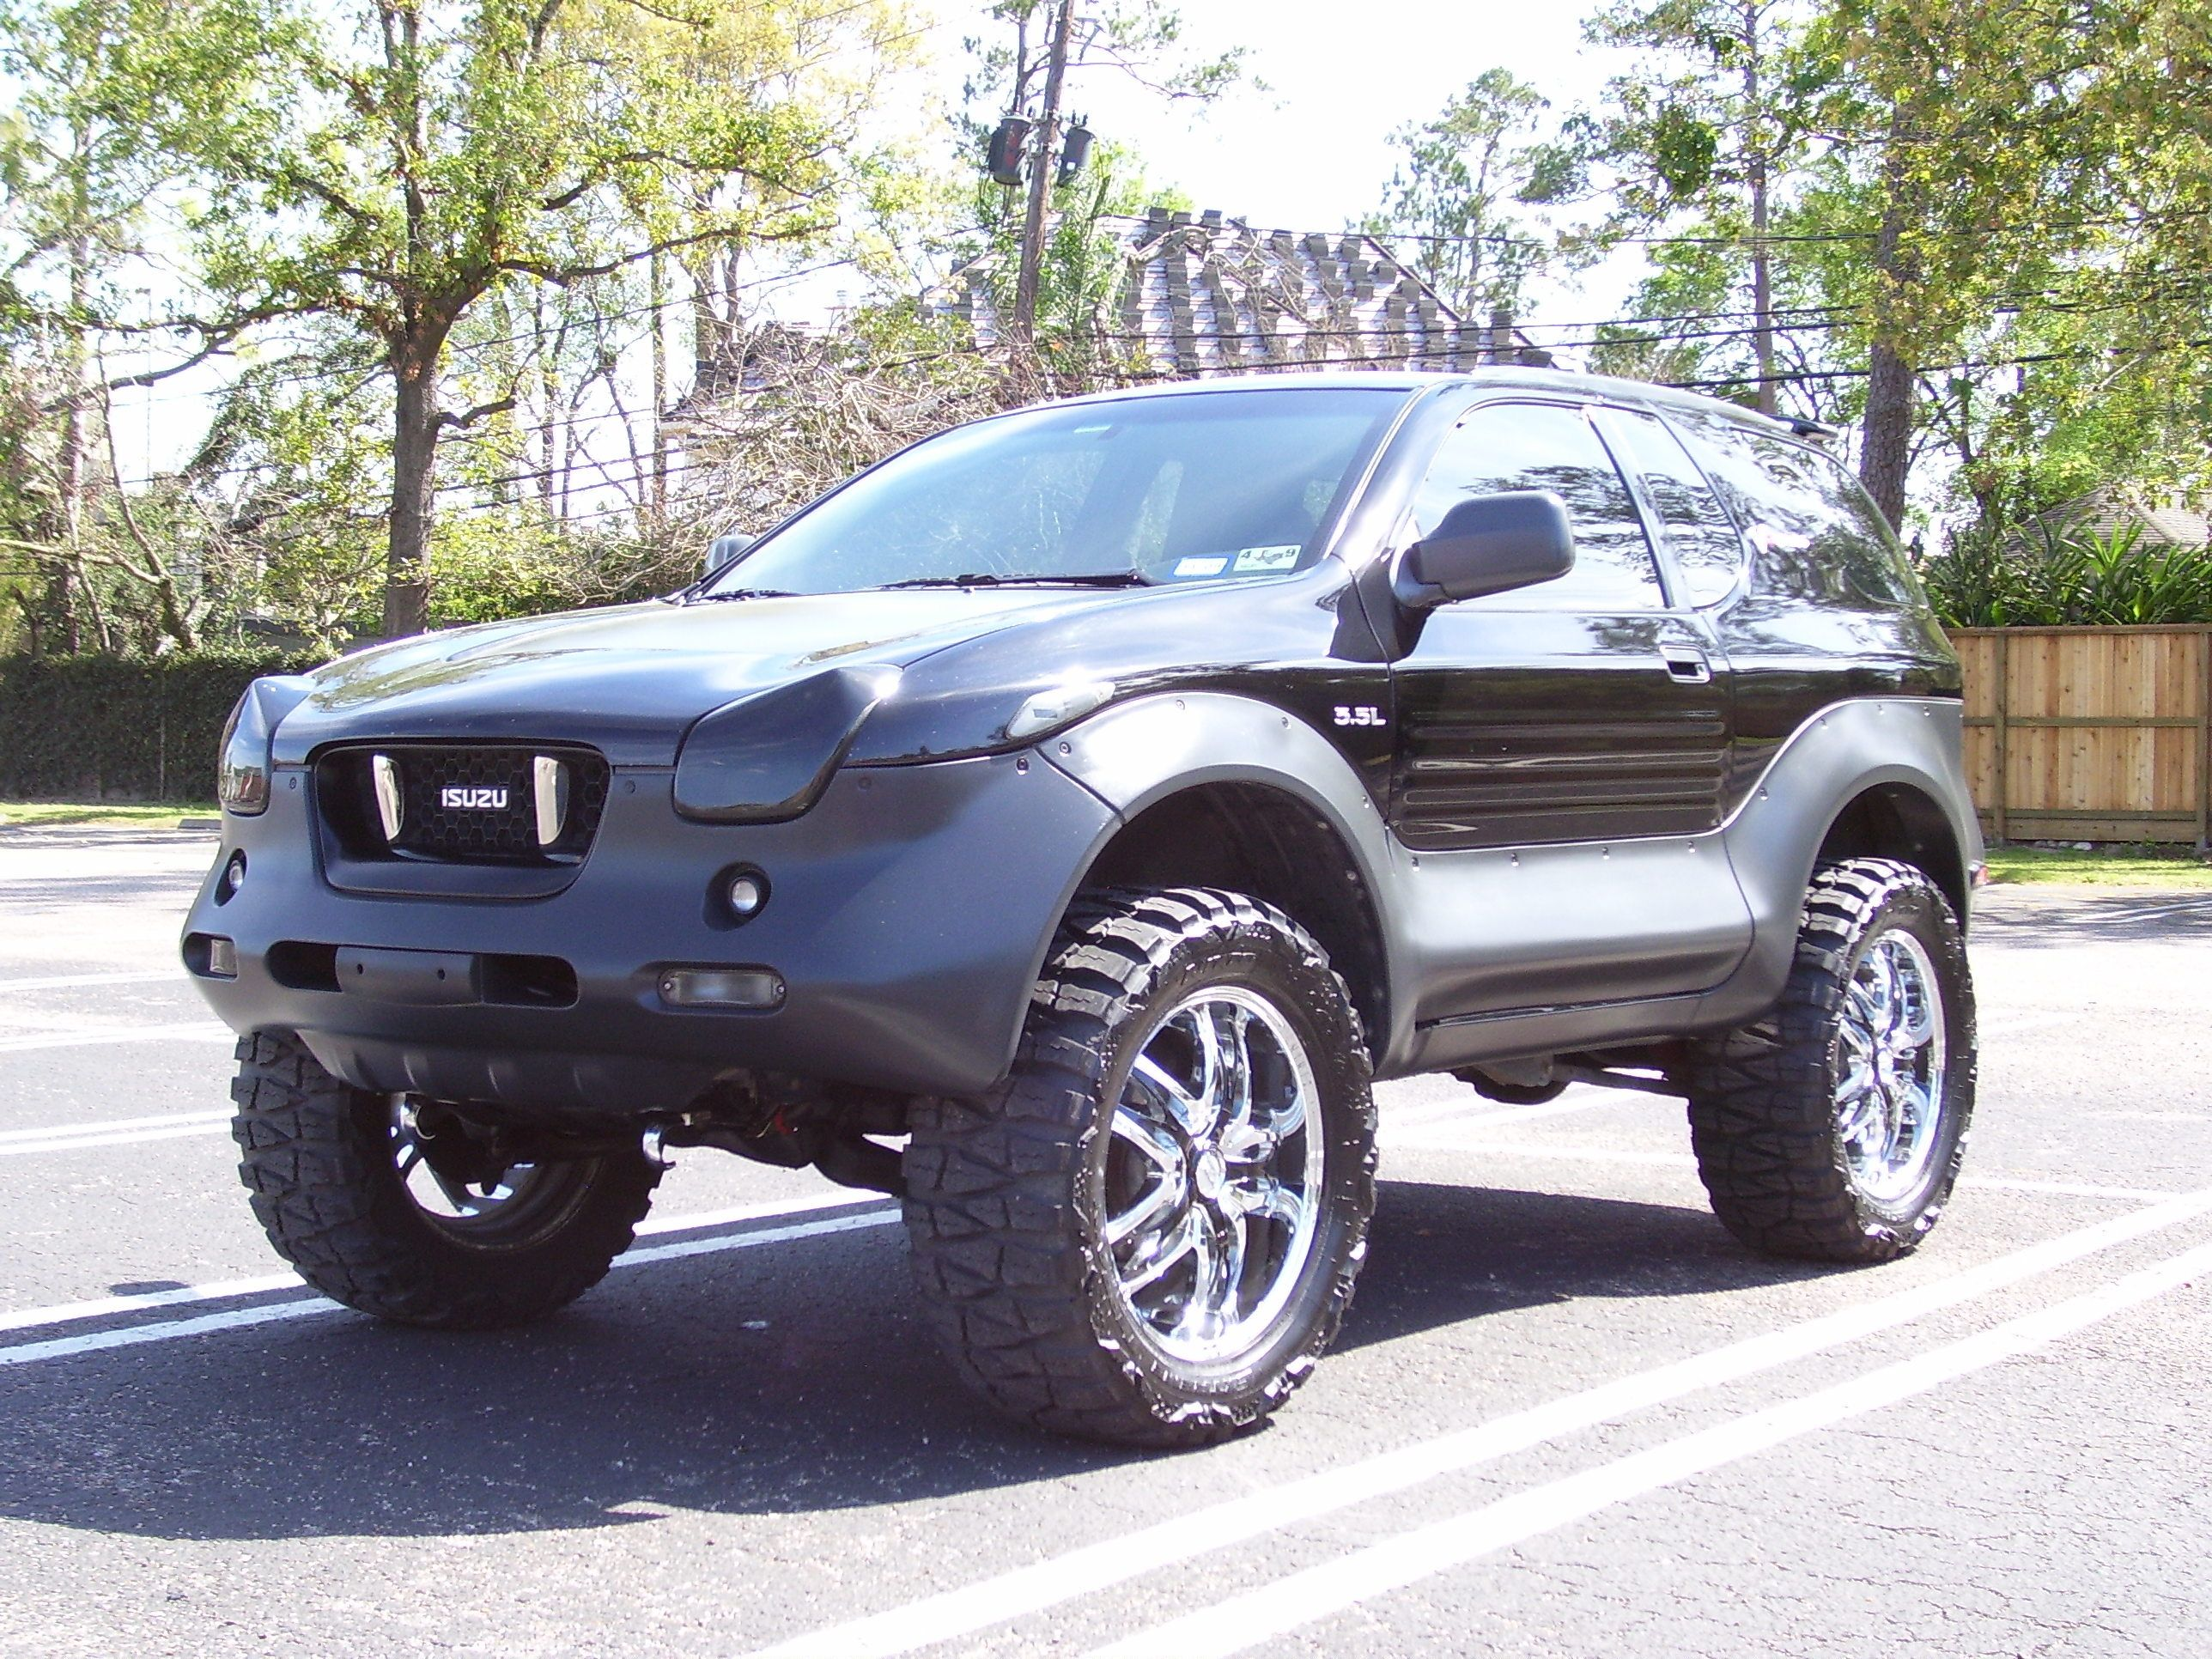 isuzu vehicross cars pinterest for sale. Cars Review. Best American Auto & Cars Review